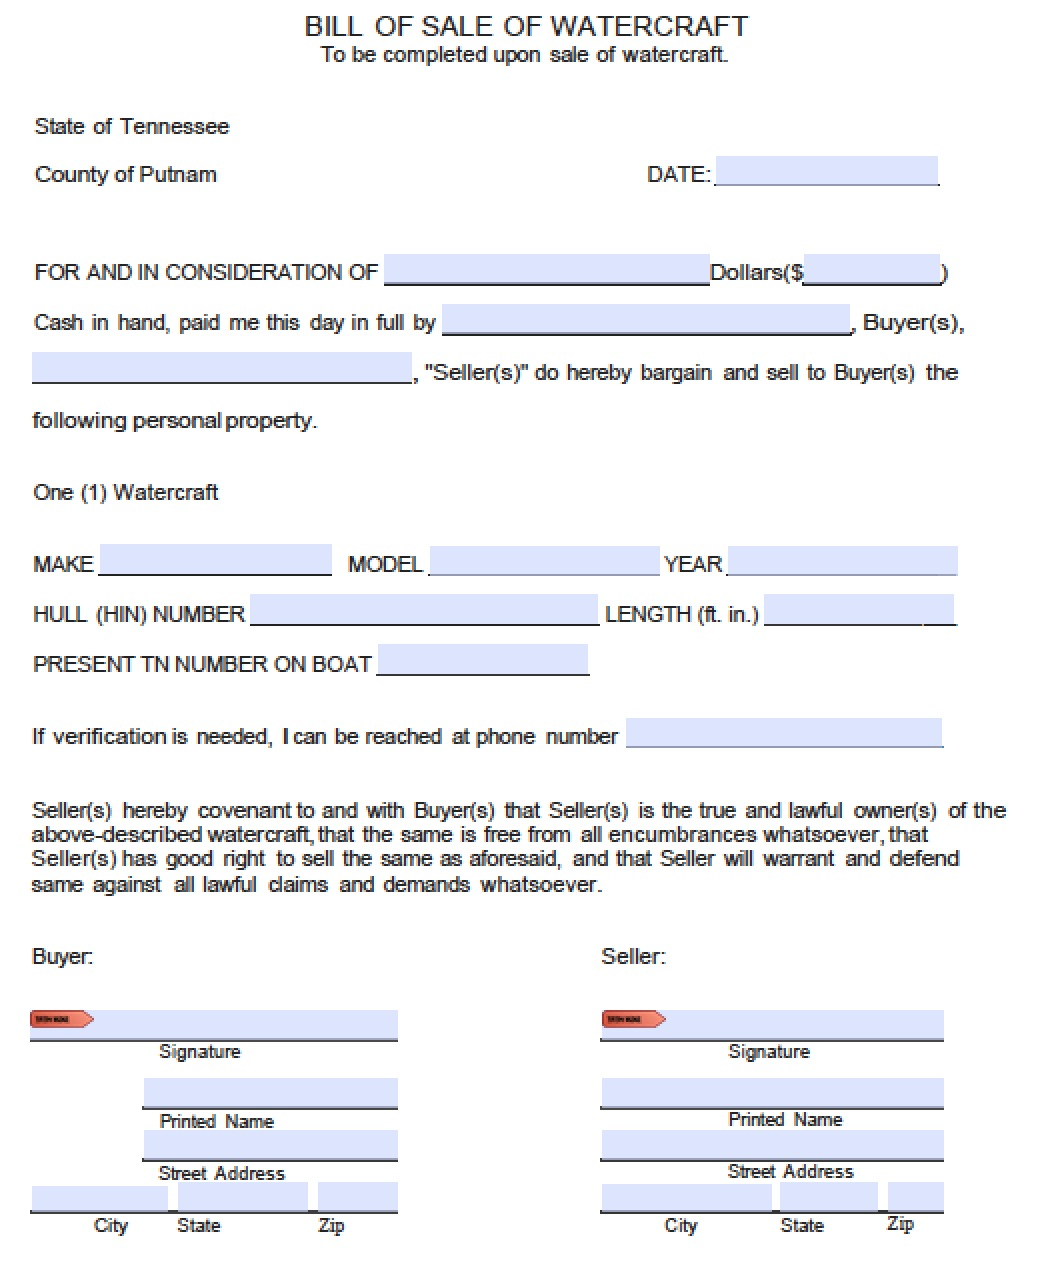 Free Putnam County, Tennessee Bill of Sale Form | PDF | Word (.doc)